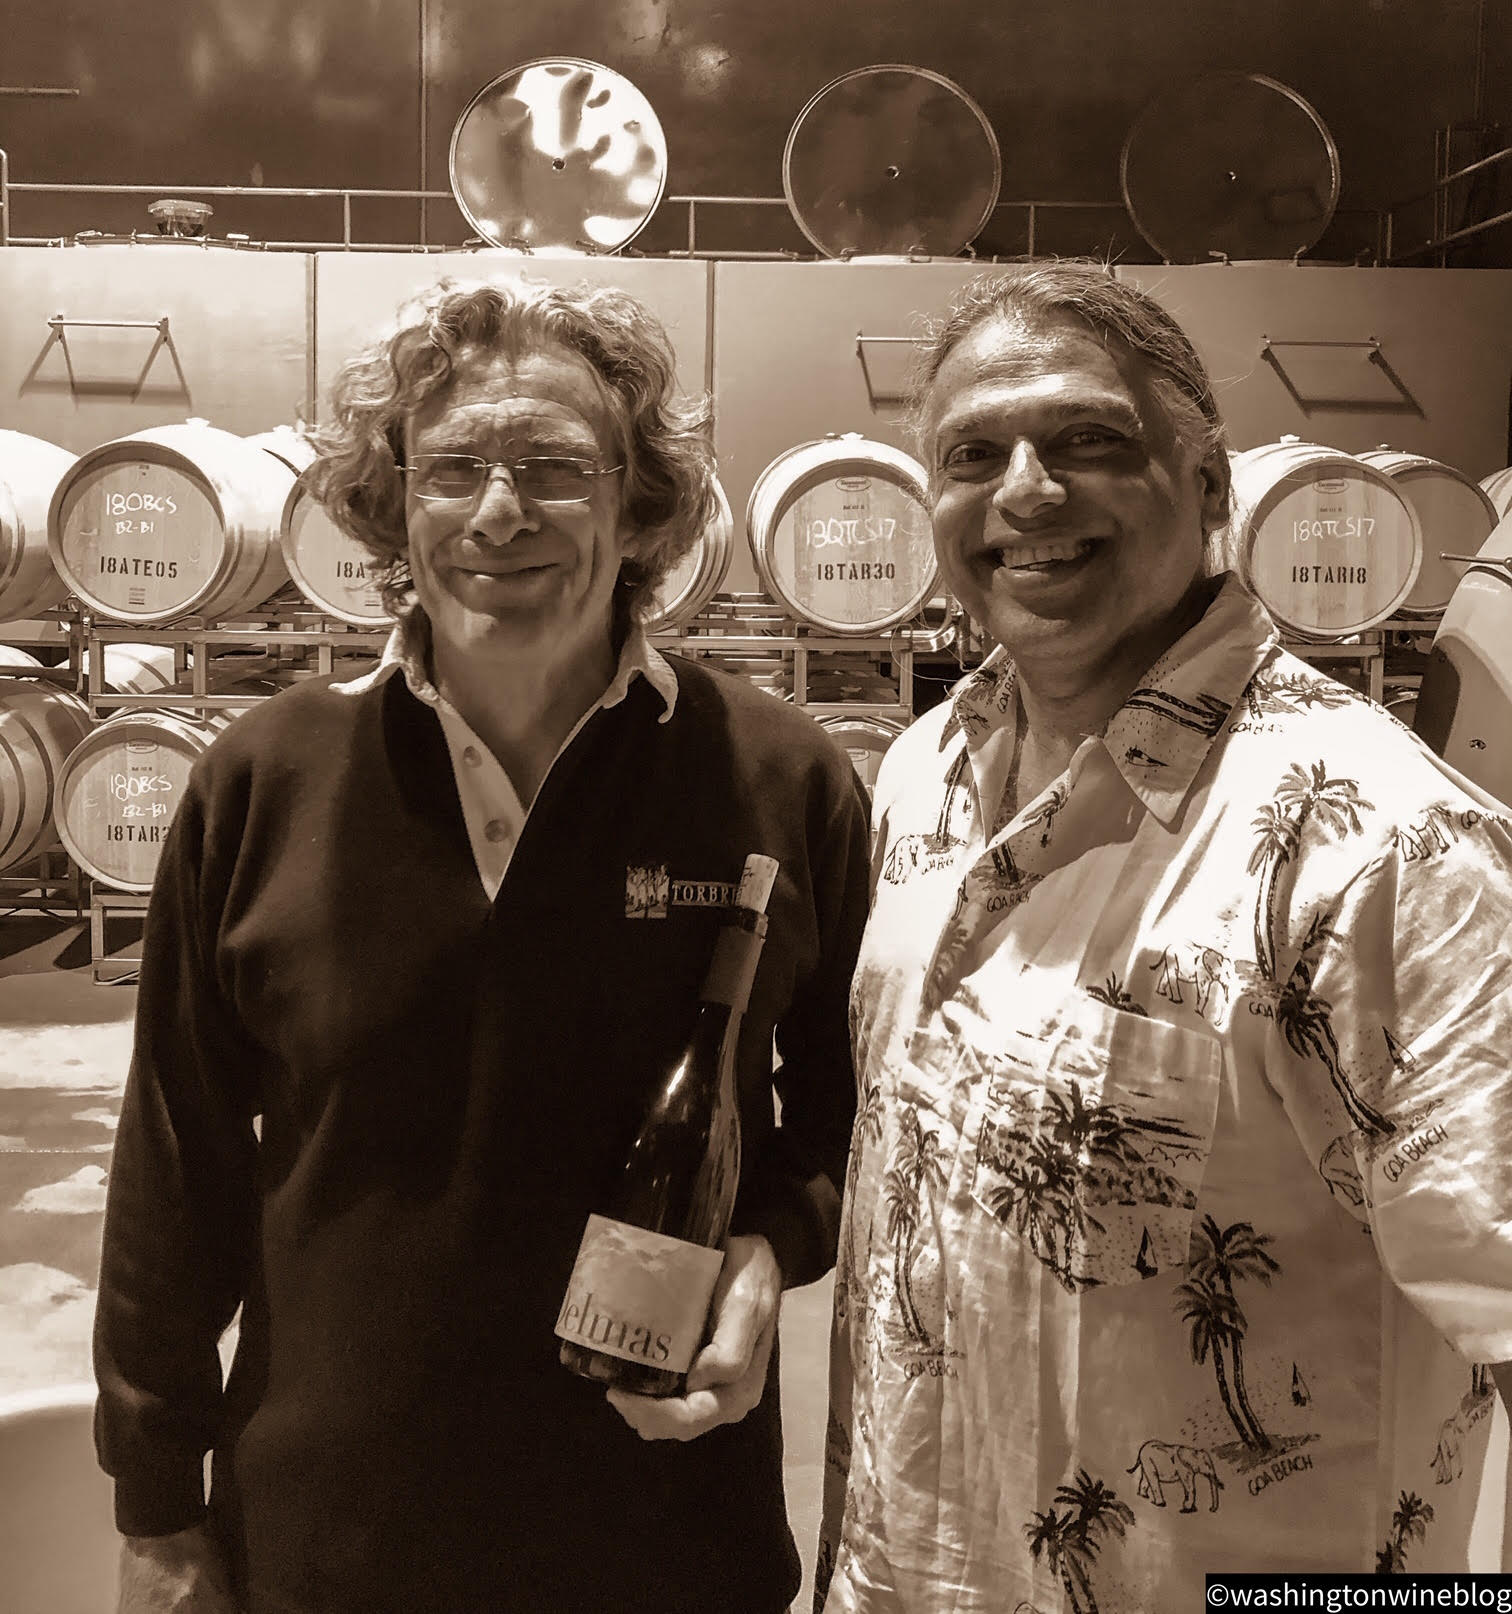 Brilliant photo of Delmas founder, Steve Robertson (L) with his talented winemaker, Billo Naravane, MW (R).